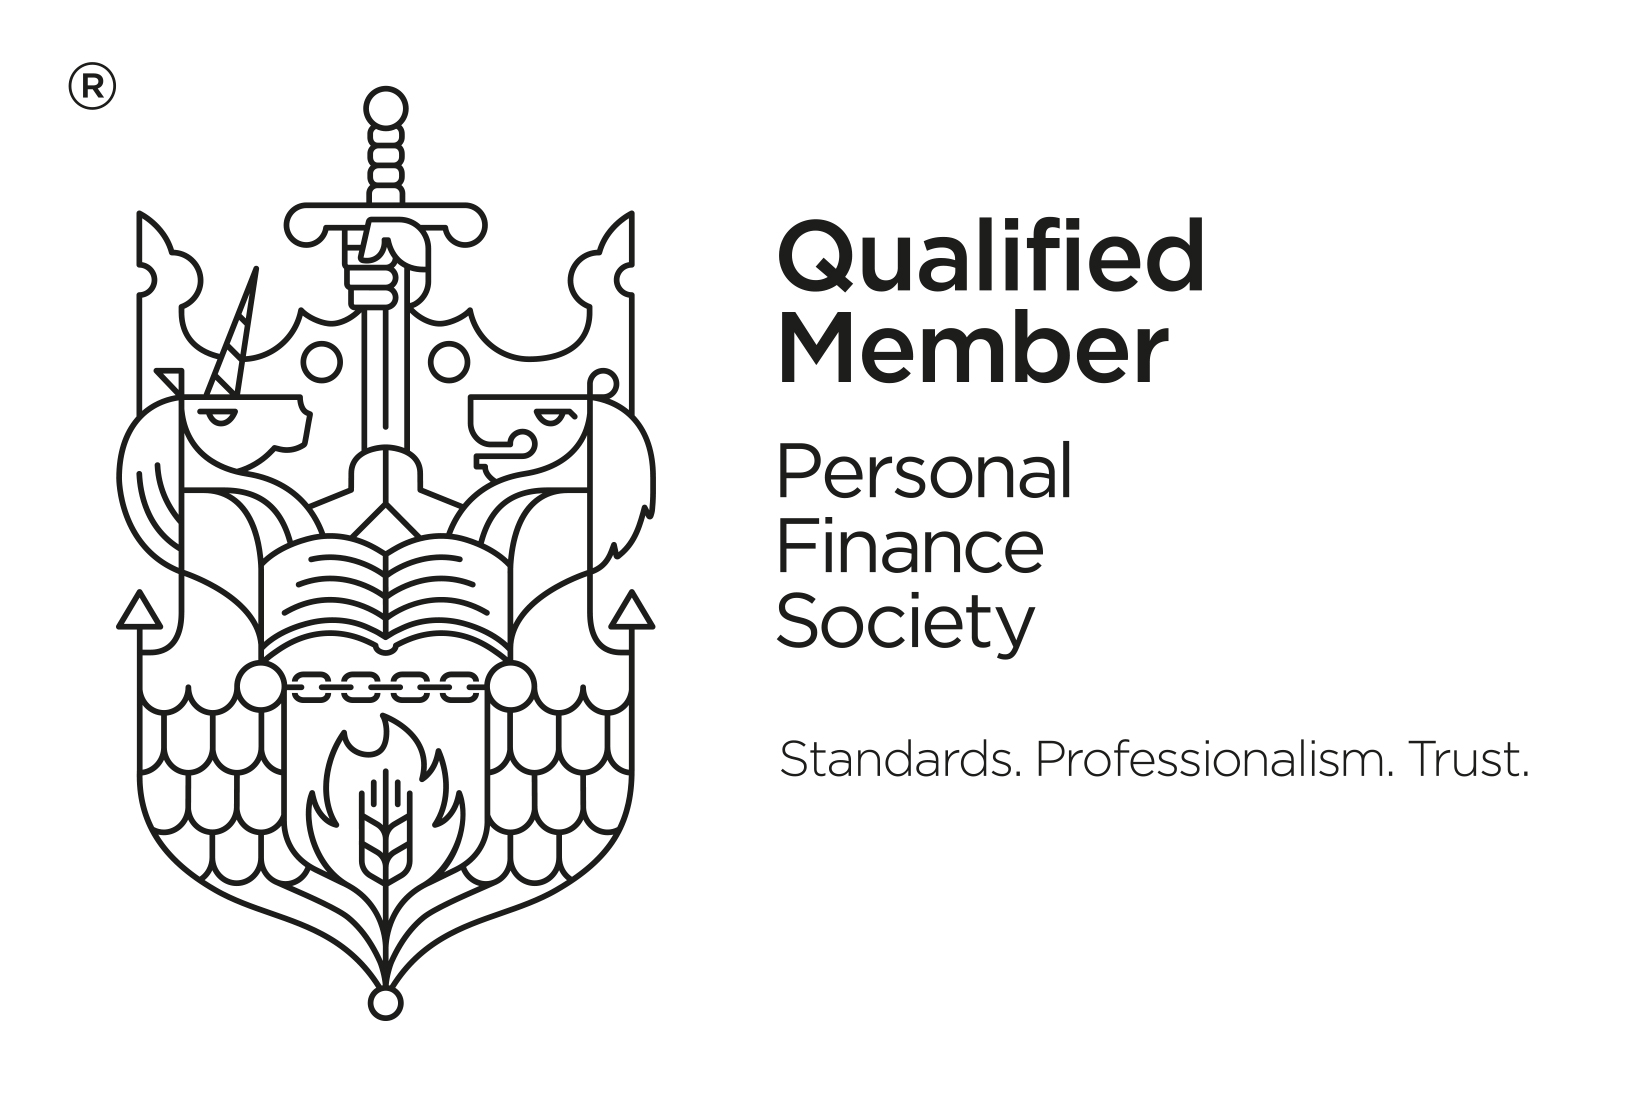 QualifiedMember PFS Black with strapline